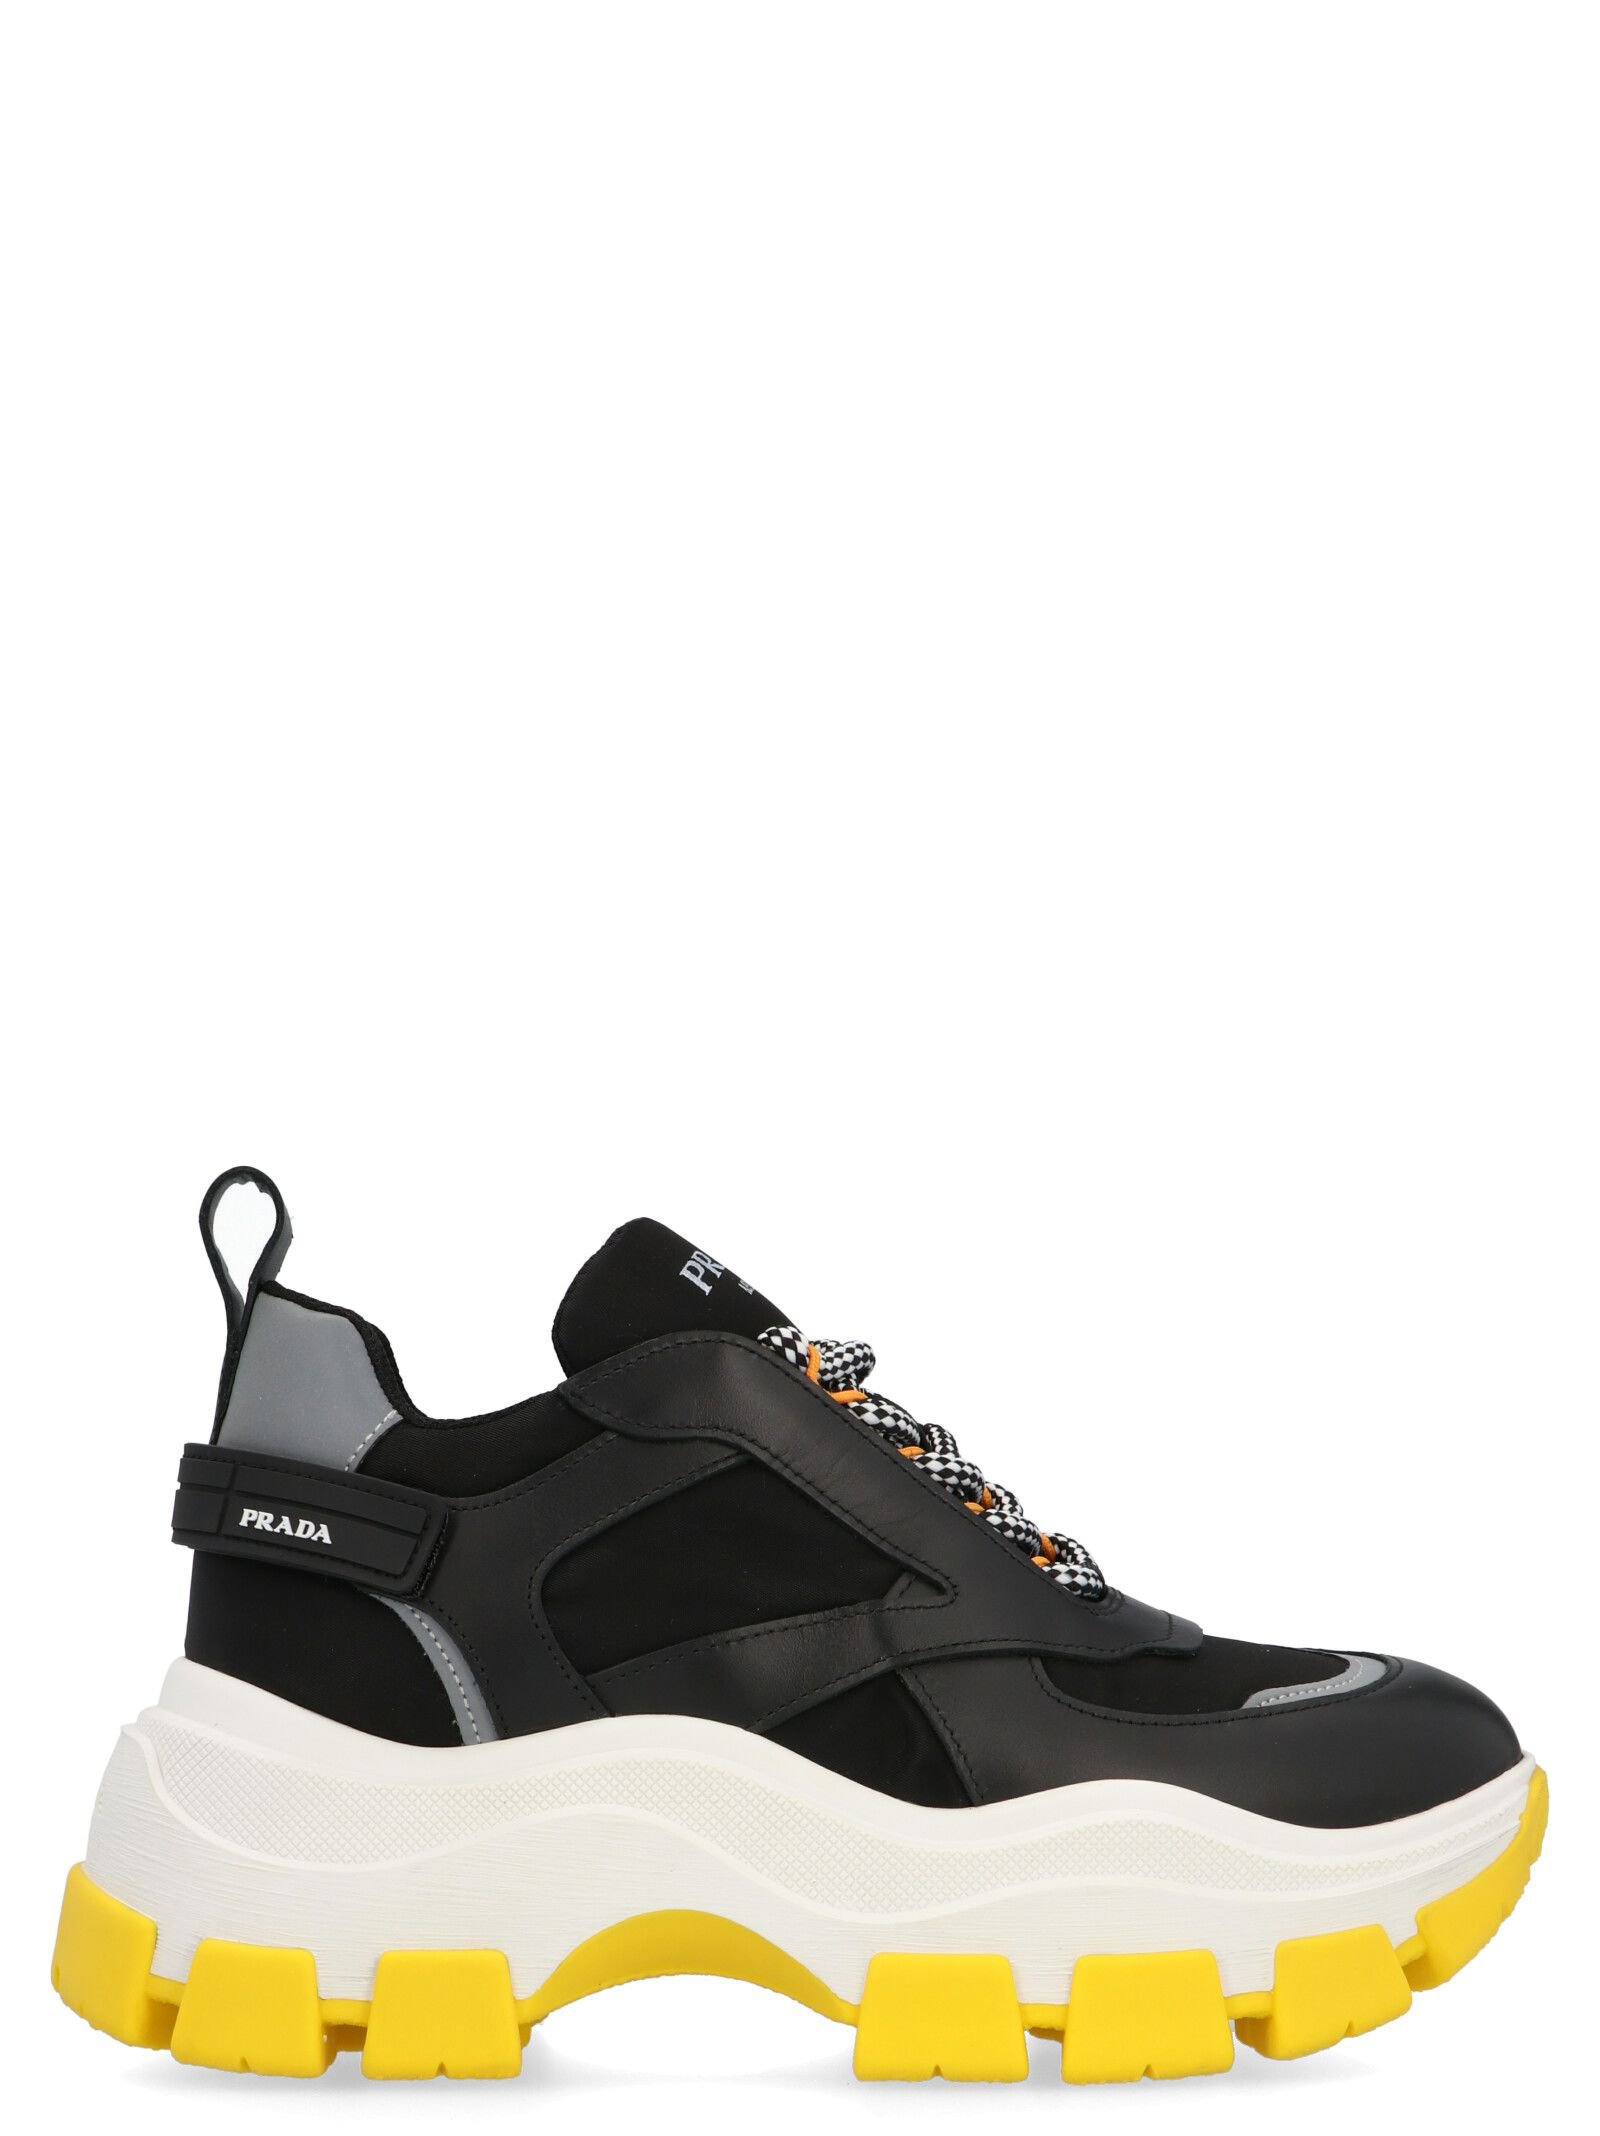 Prada pegasus Shoes